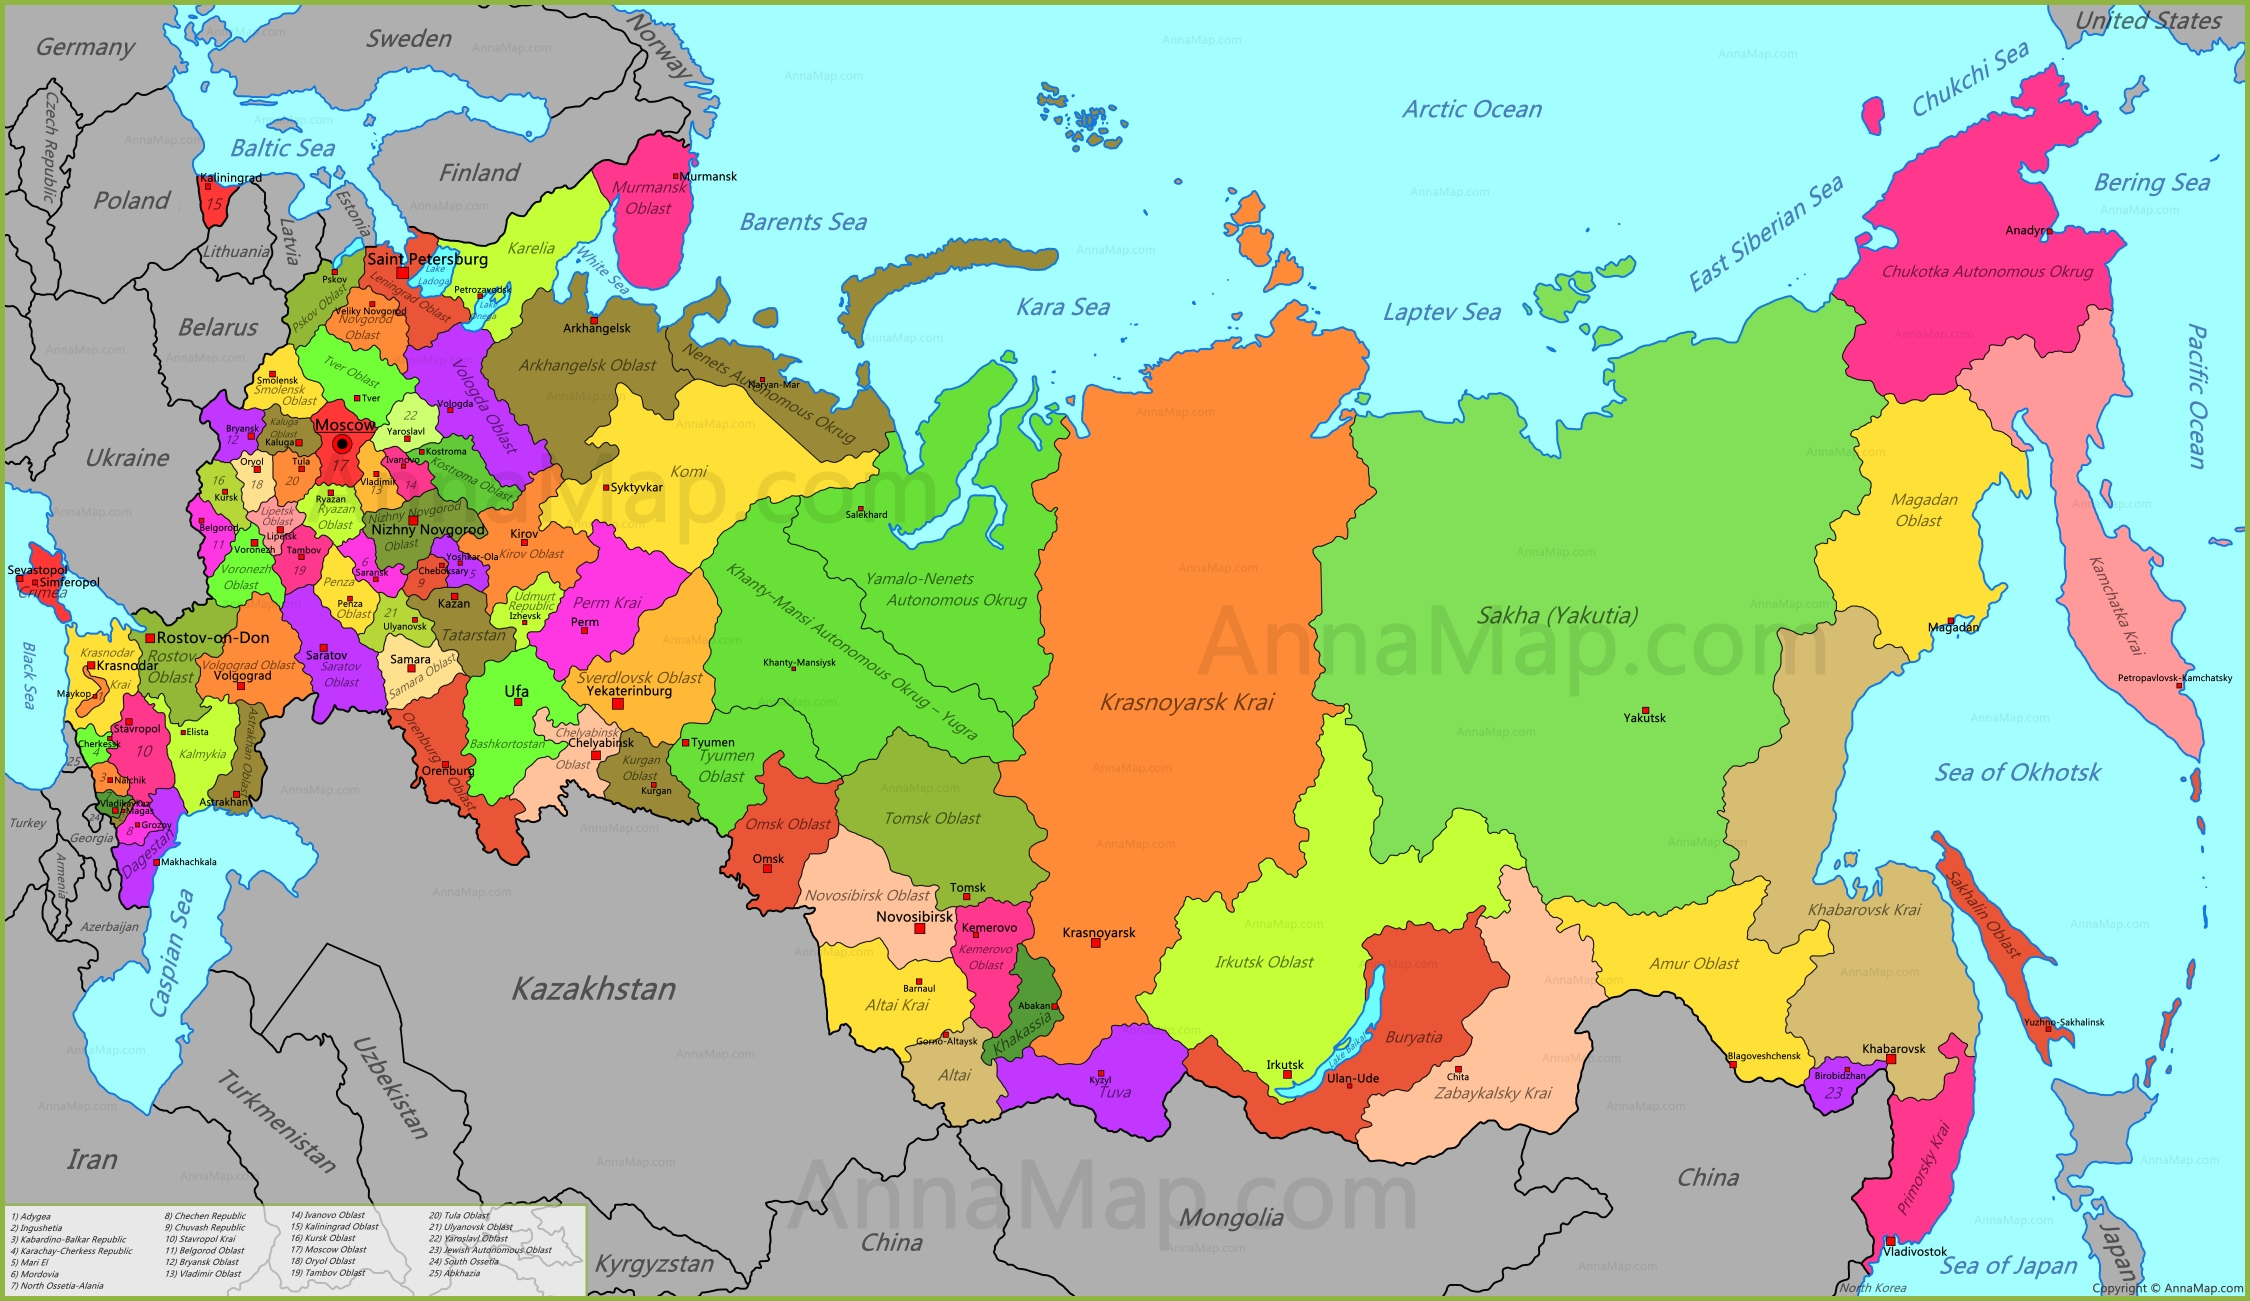 Russian Federation Map Russia Map | Map of Russia (Russian Federation)   AnnaMap.com